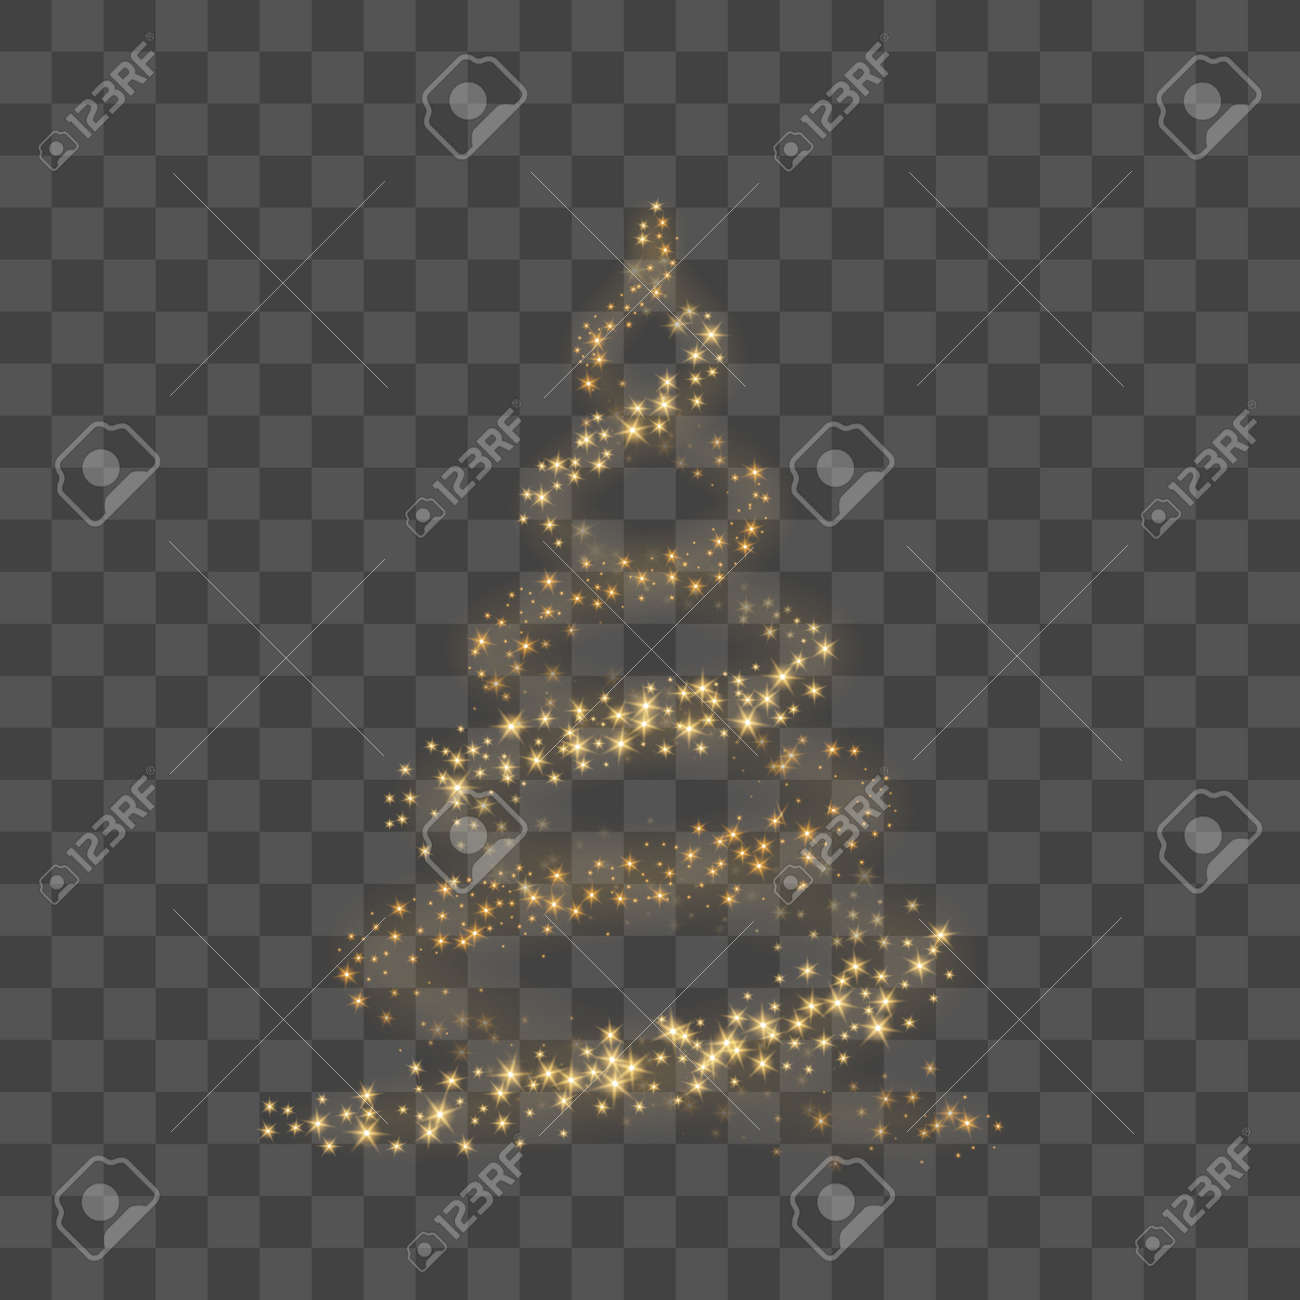 Christmas Tree On Transparent Background Gold As Symbol Of Happy New Year